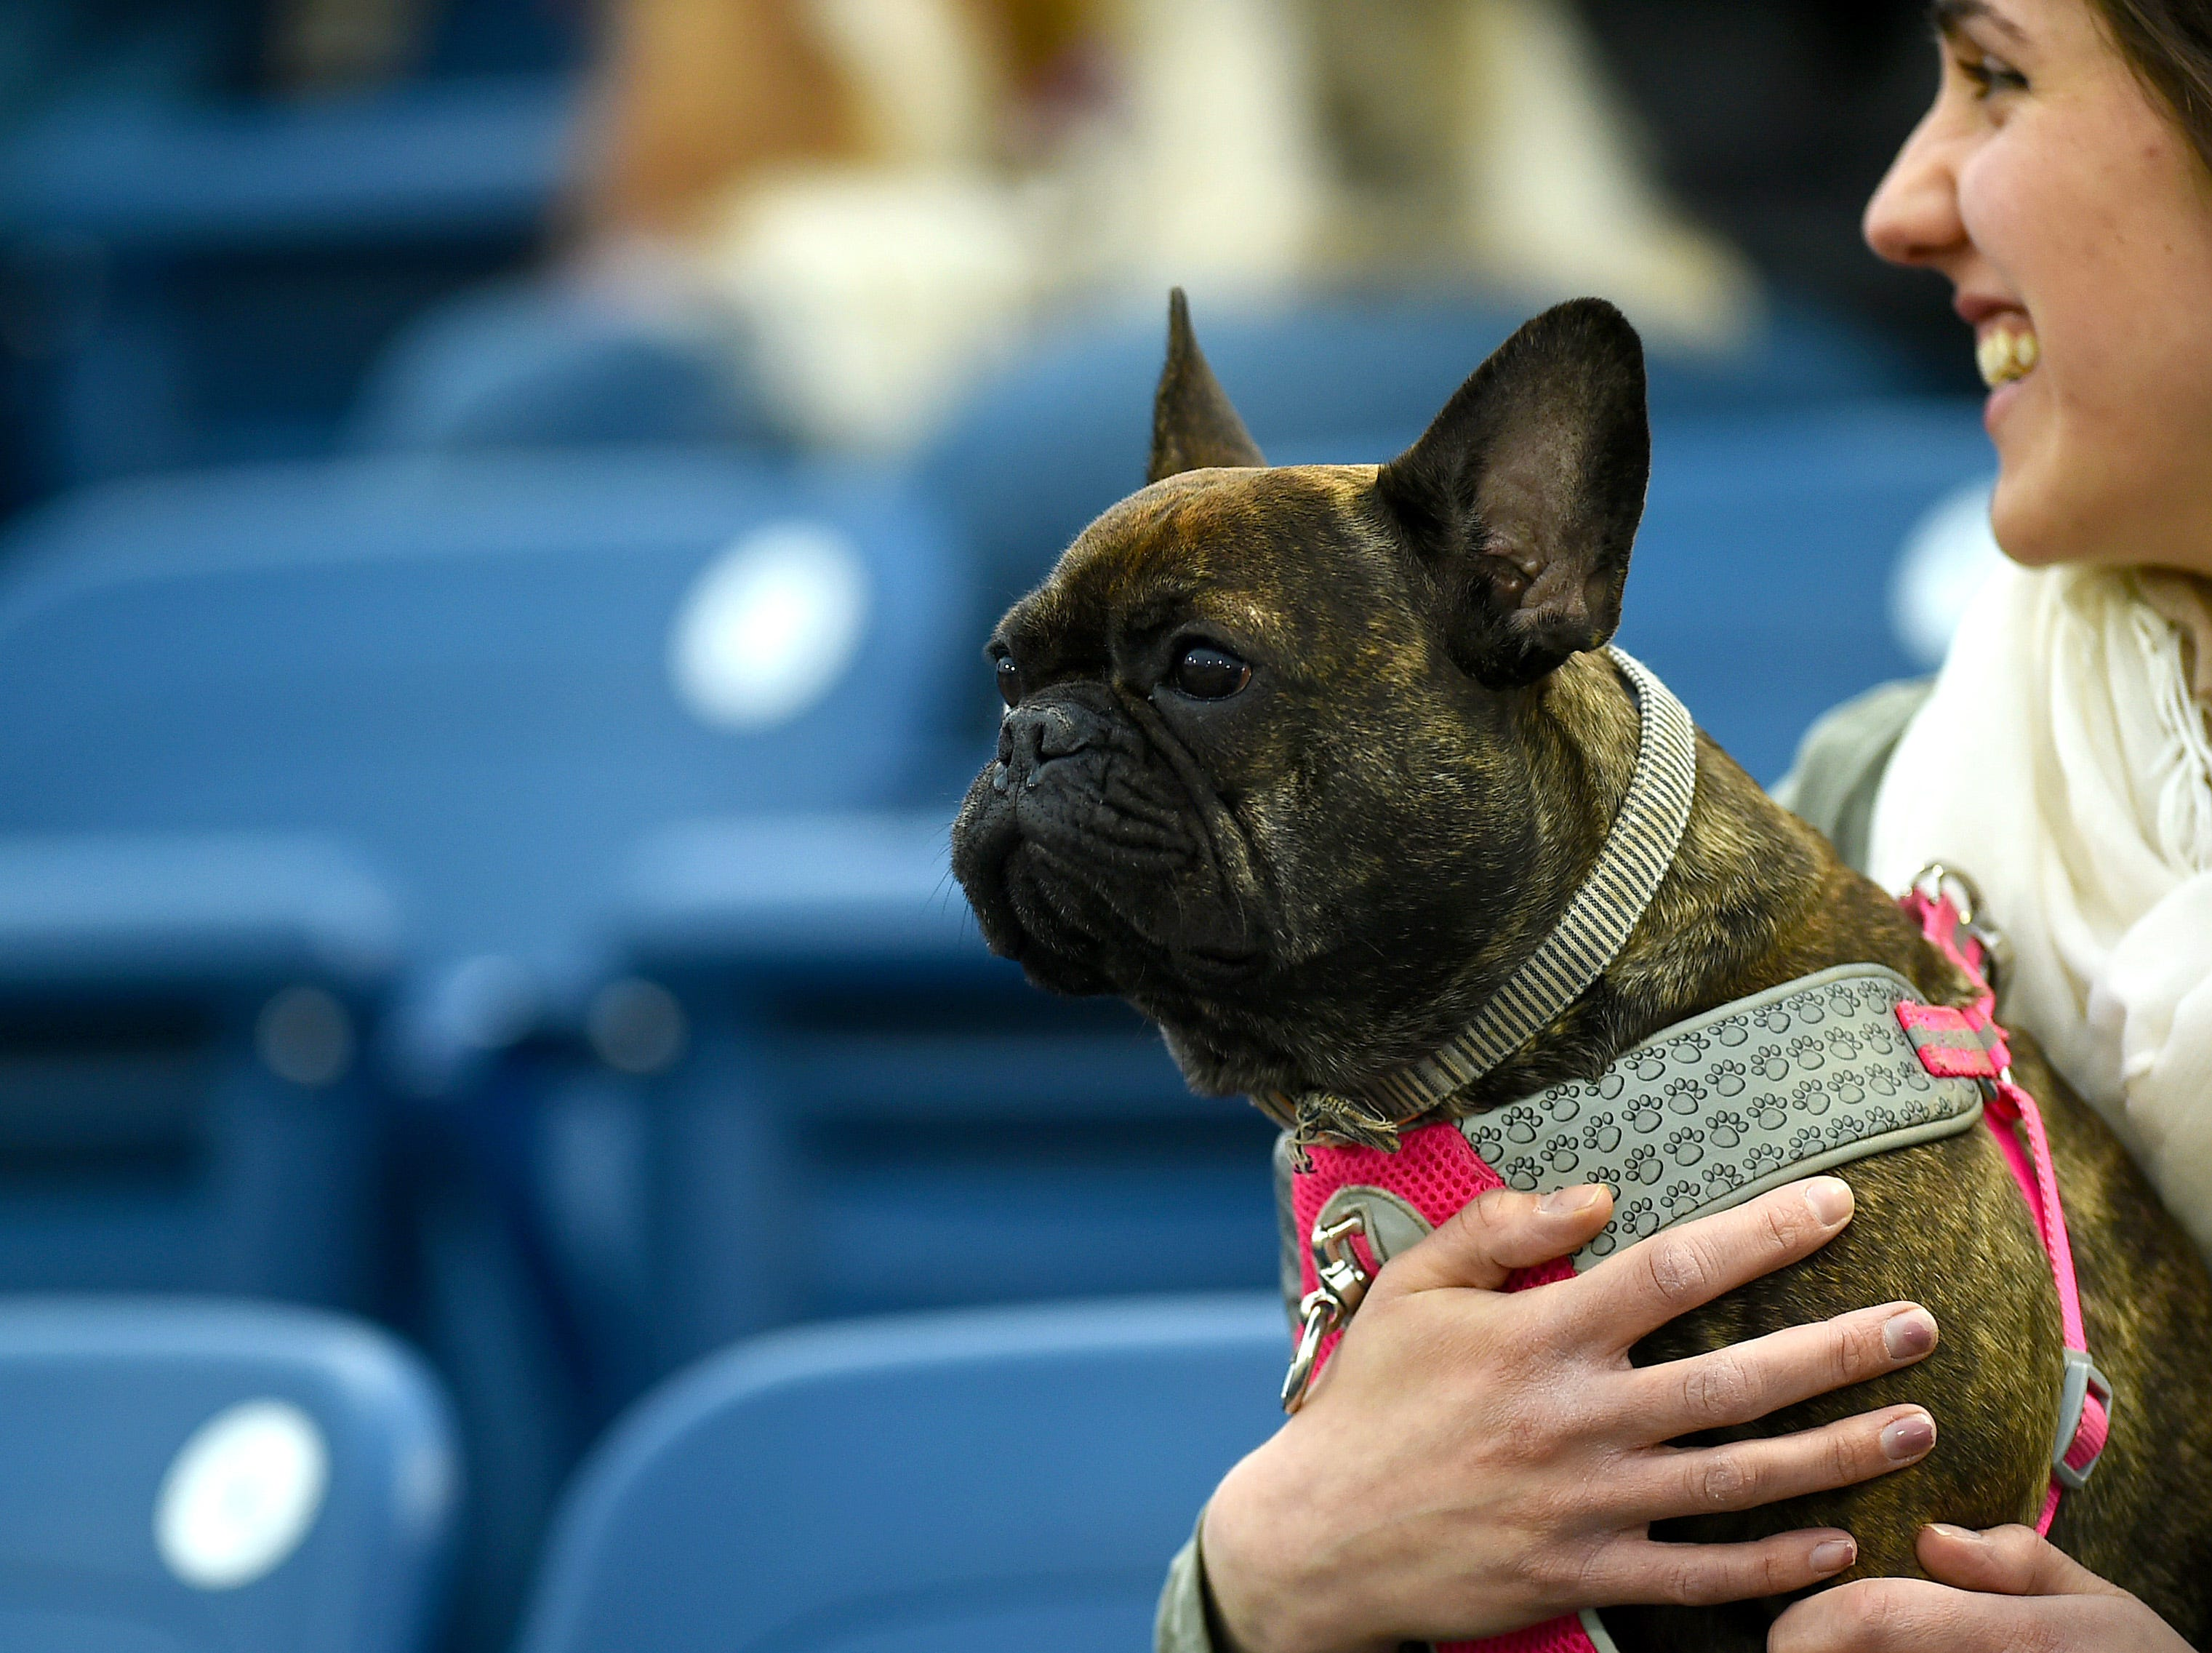 Penny and her owner Maura Reilly of Binghamton watch as the Binghamton Rumble Ponies take on the Akron RubberDucks at NYSEG Stadium, April 29, 2019.